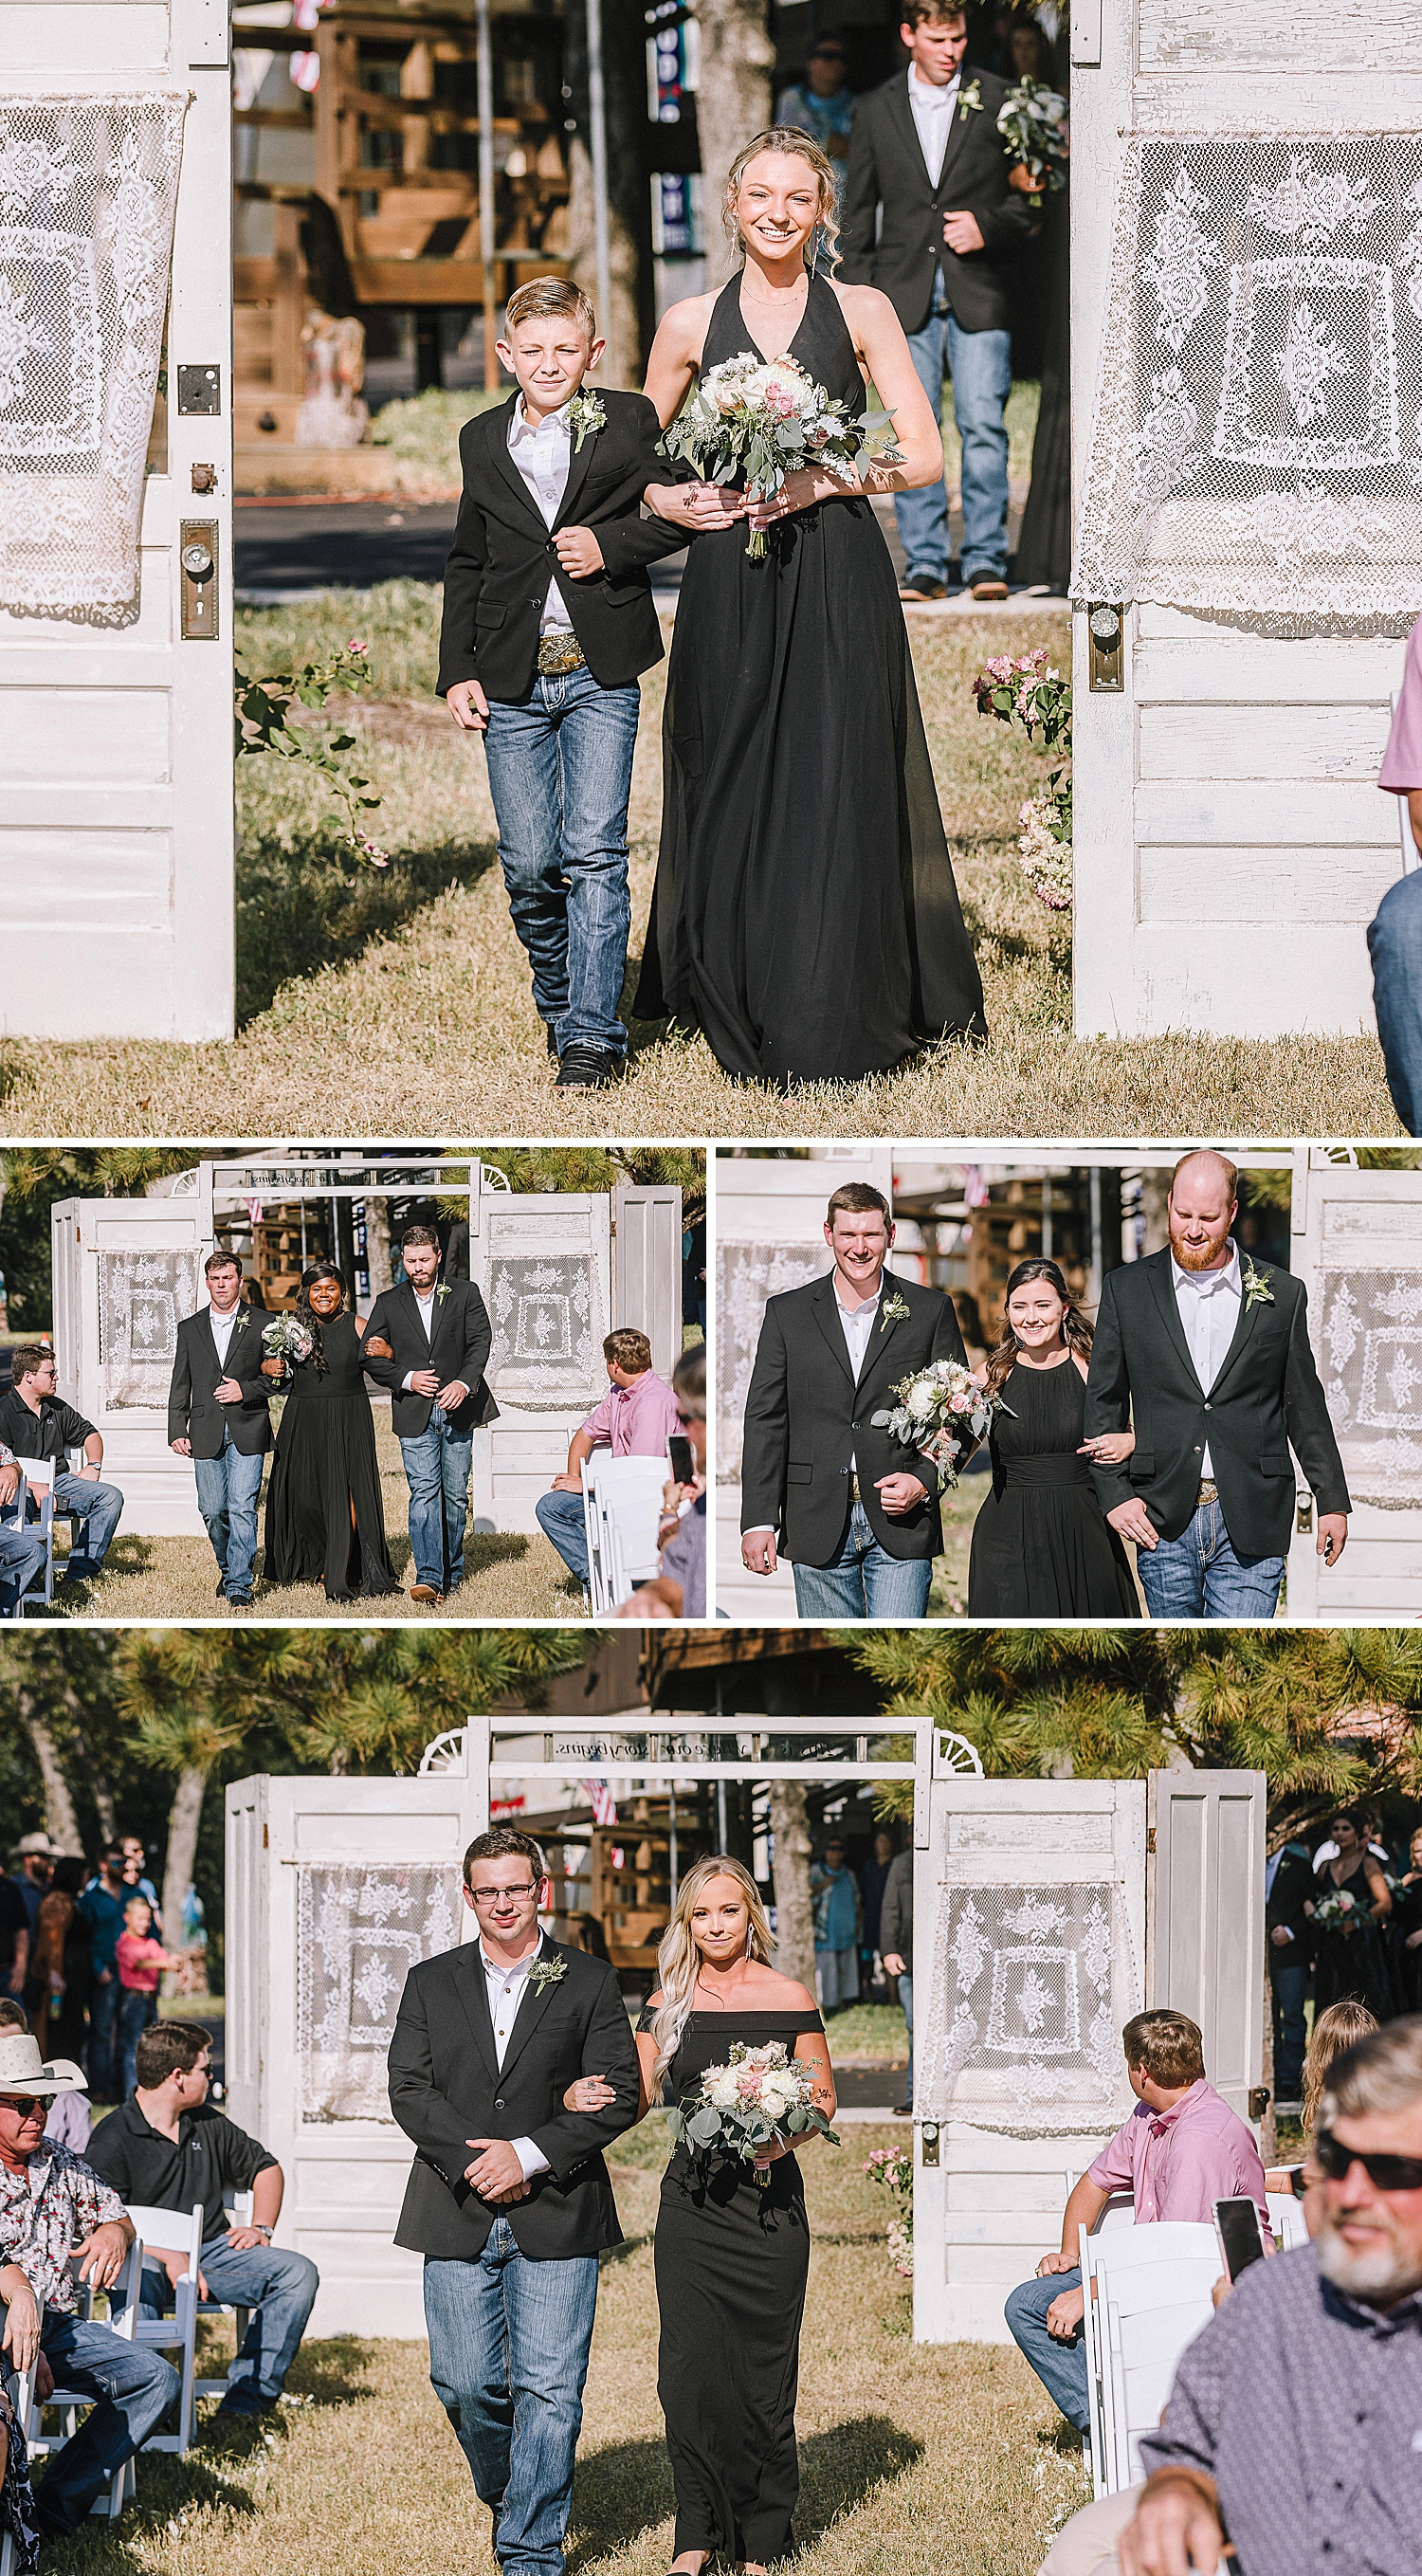 Rackler-Ranch-LaVernia-Texas-Wedding-Carly-Barton-Photography_0077.jpg